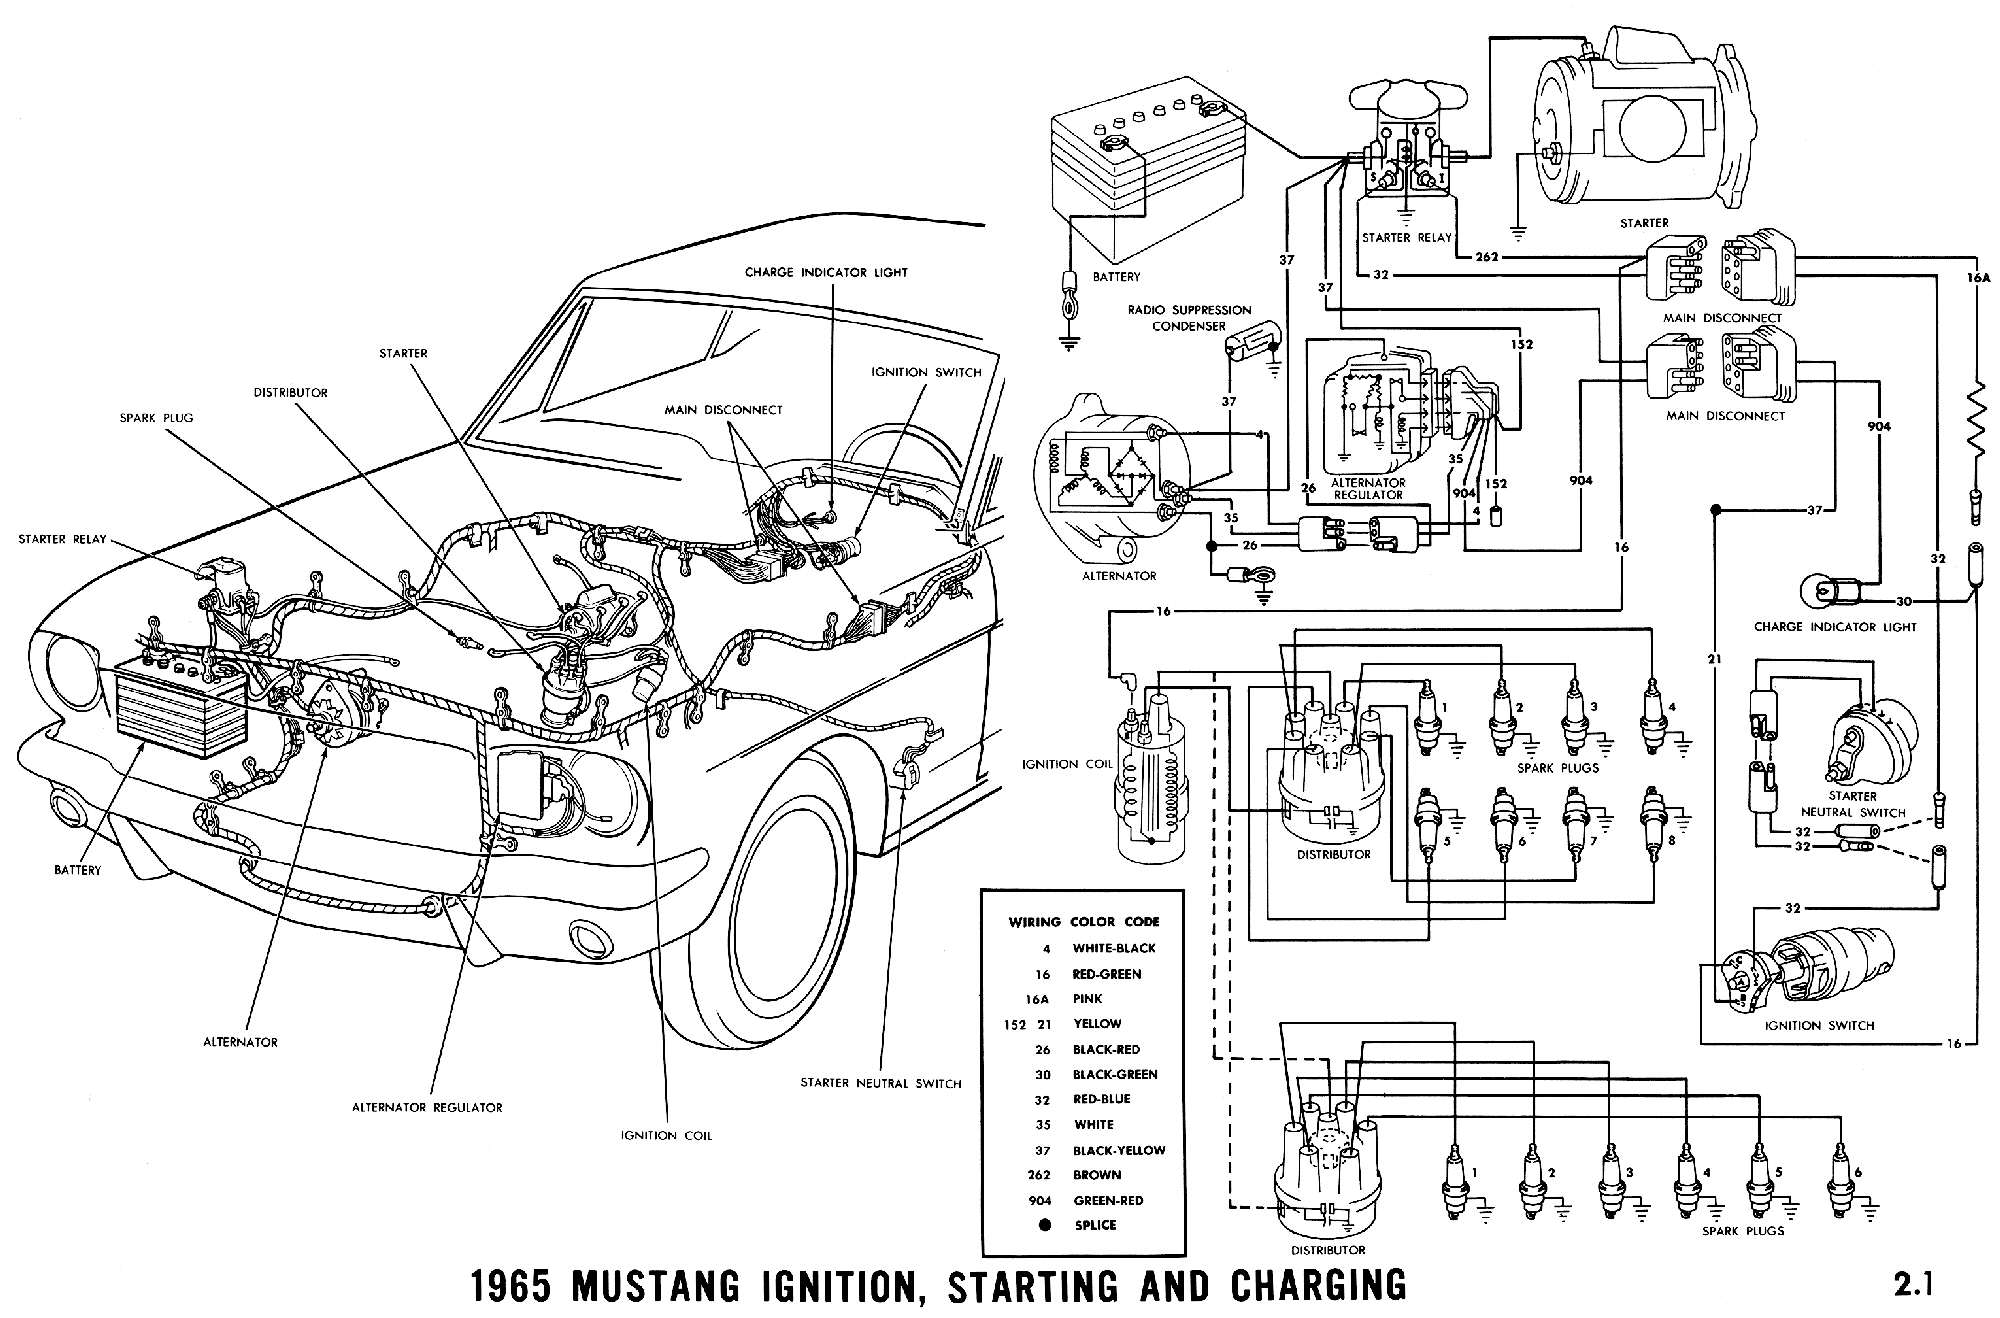 1965c 1965 mustang wiring diagrams average joe restoration 1968 ford mustang wiring diagram at soozxer.org